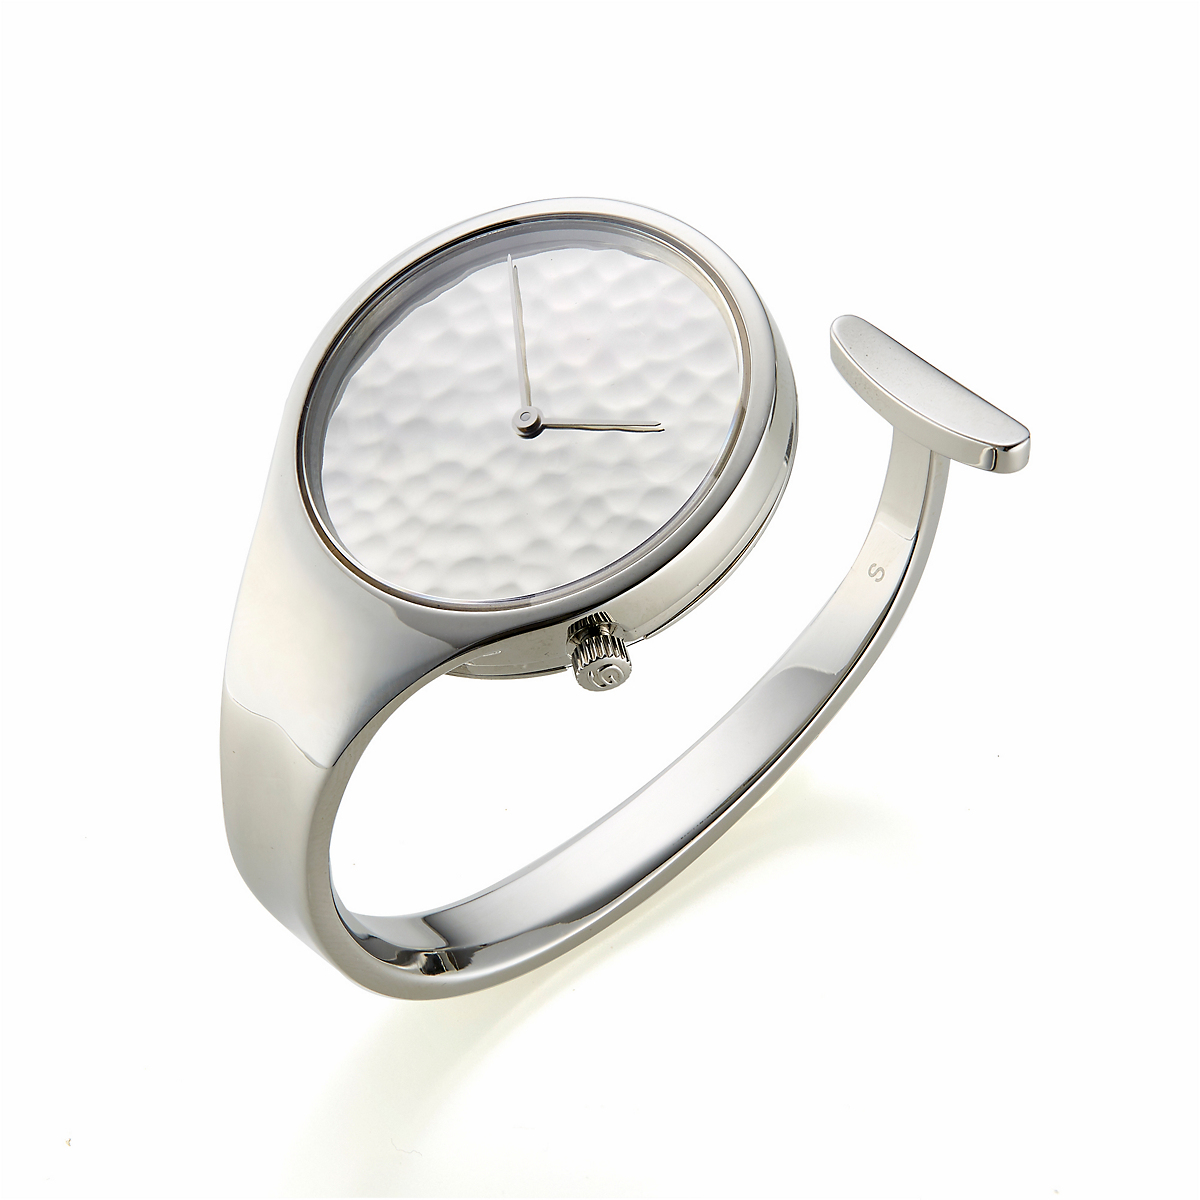 Georg Jensen Vivianna Hammered Limited Edition Silver Dial Watch